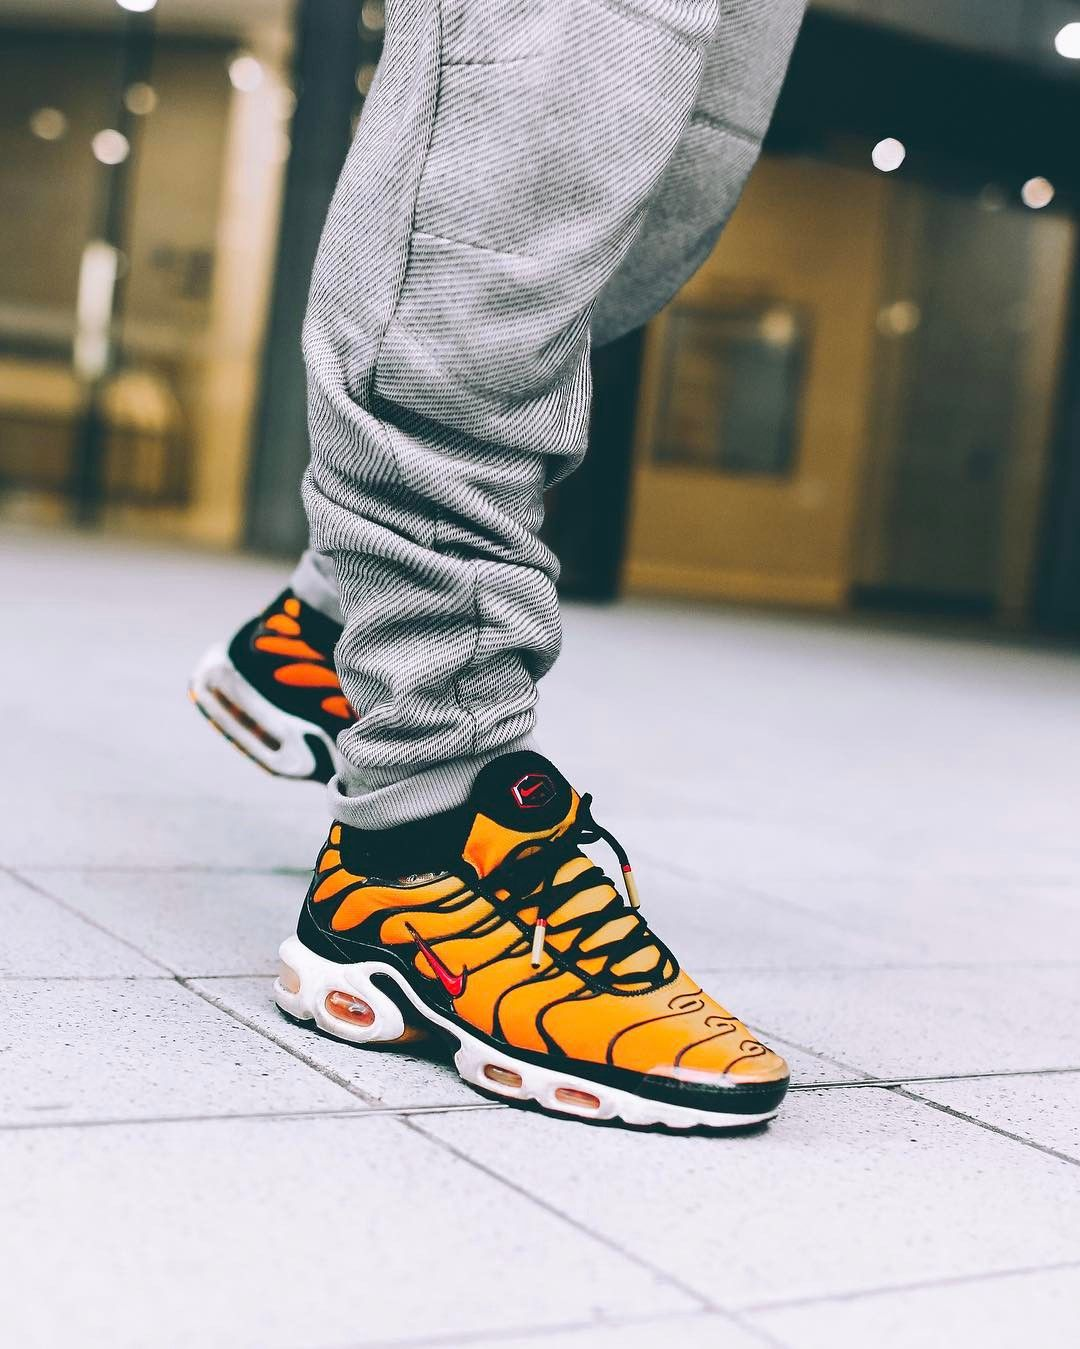 Sneaker collection, Nike shoes outlet, Nike air max plus